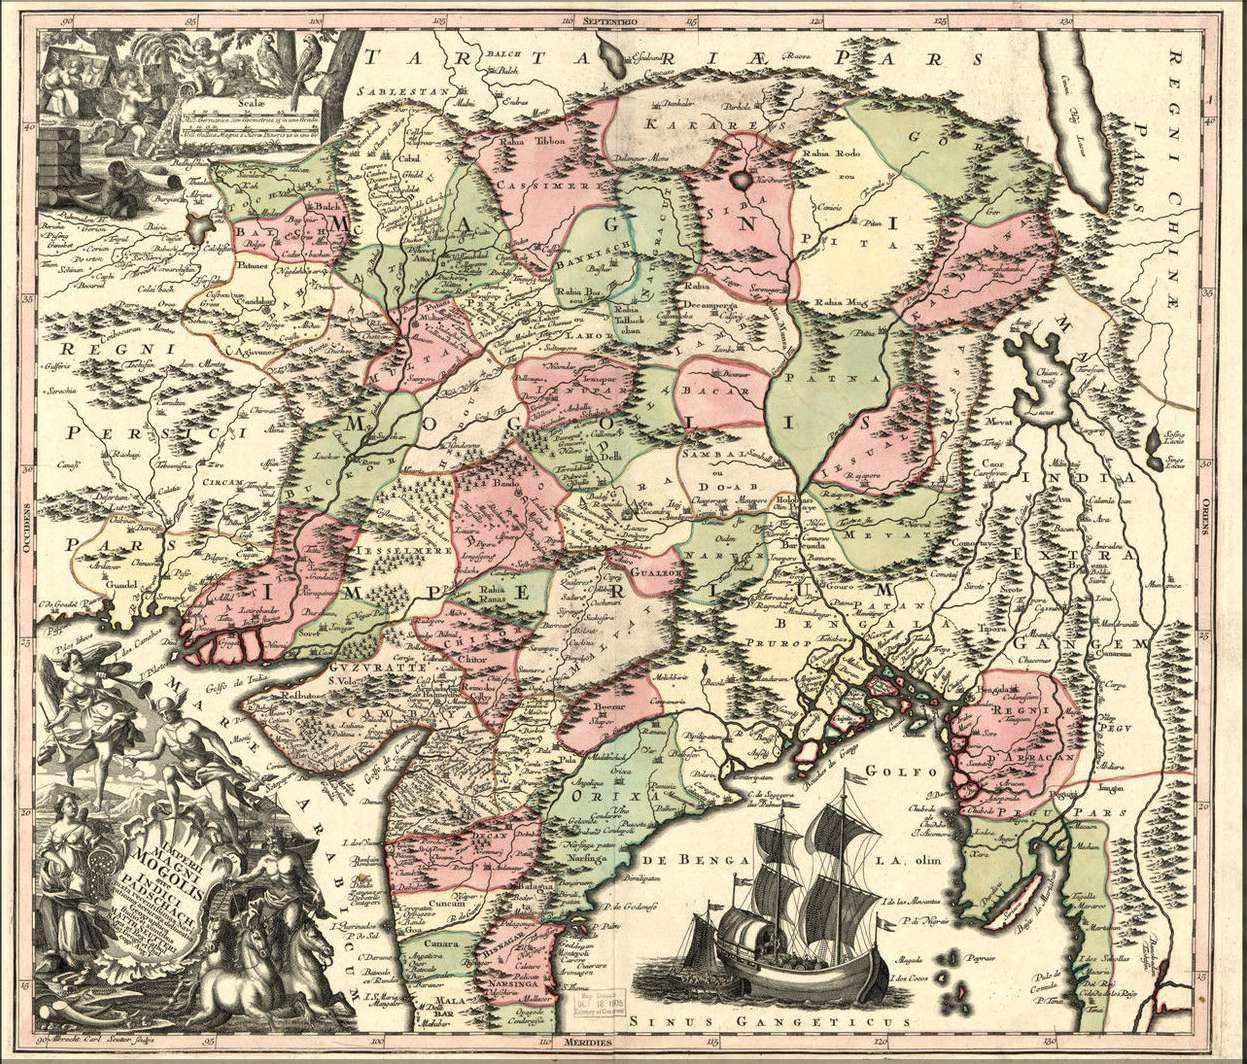 India Map Asia.File South Asia India Map In 1730 By Matthaeus Seutter Jpg